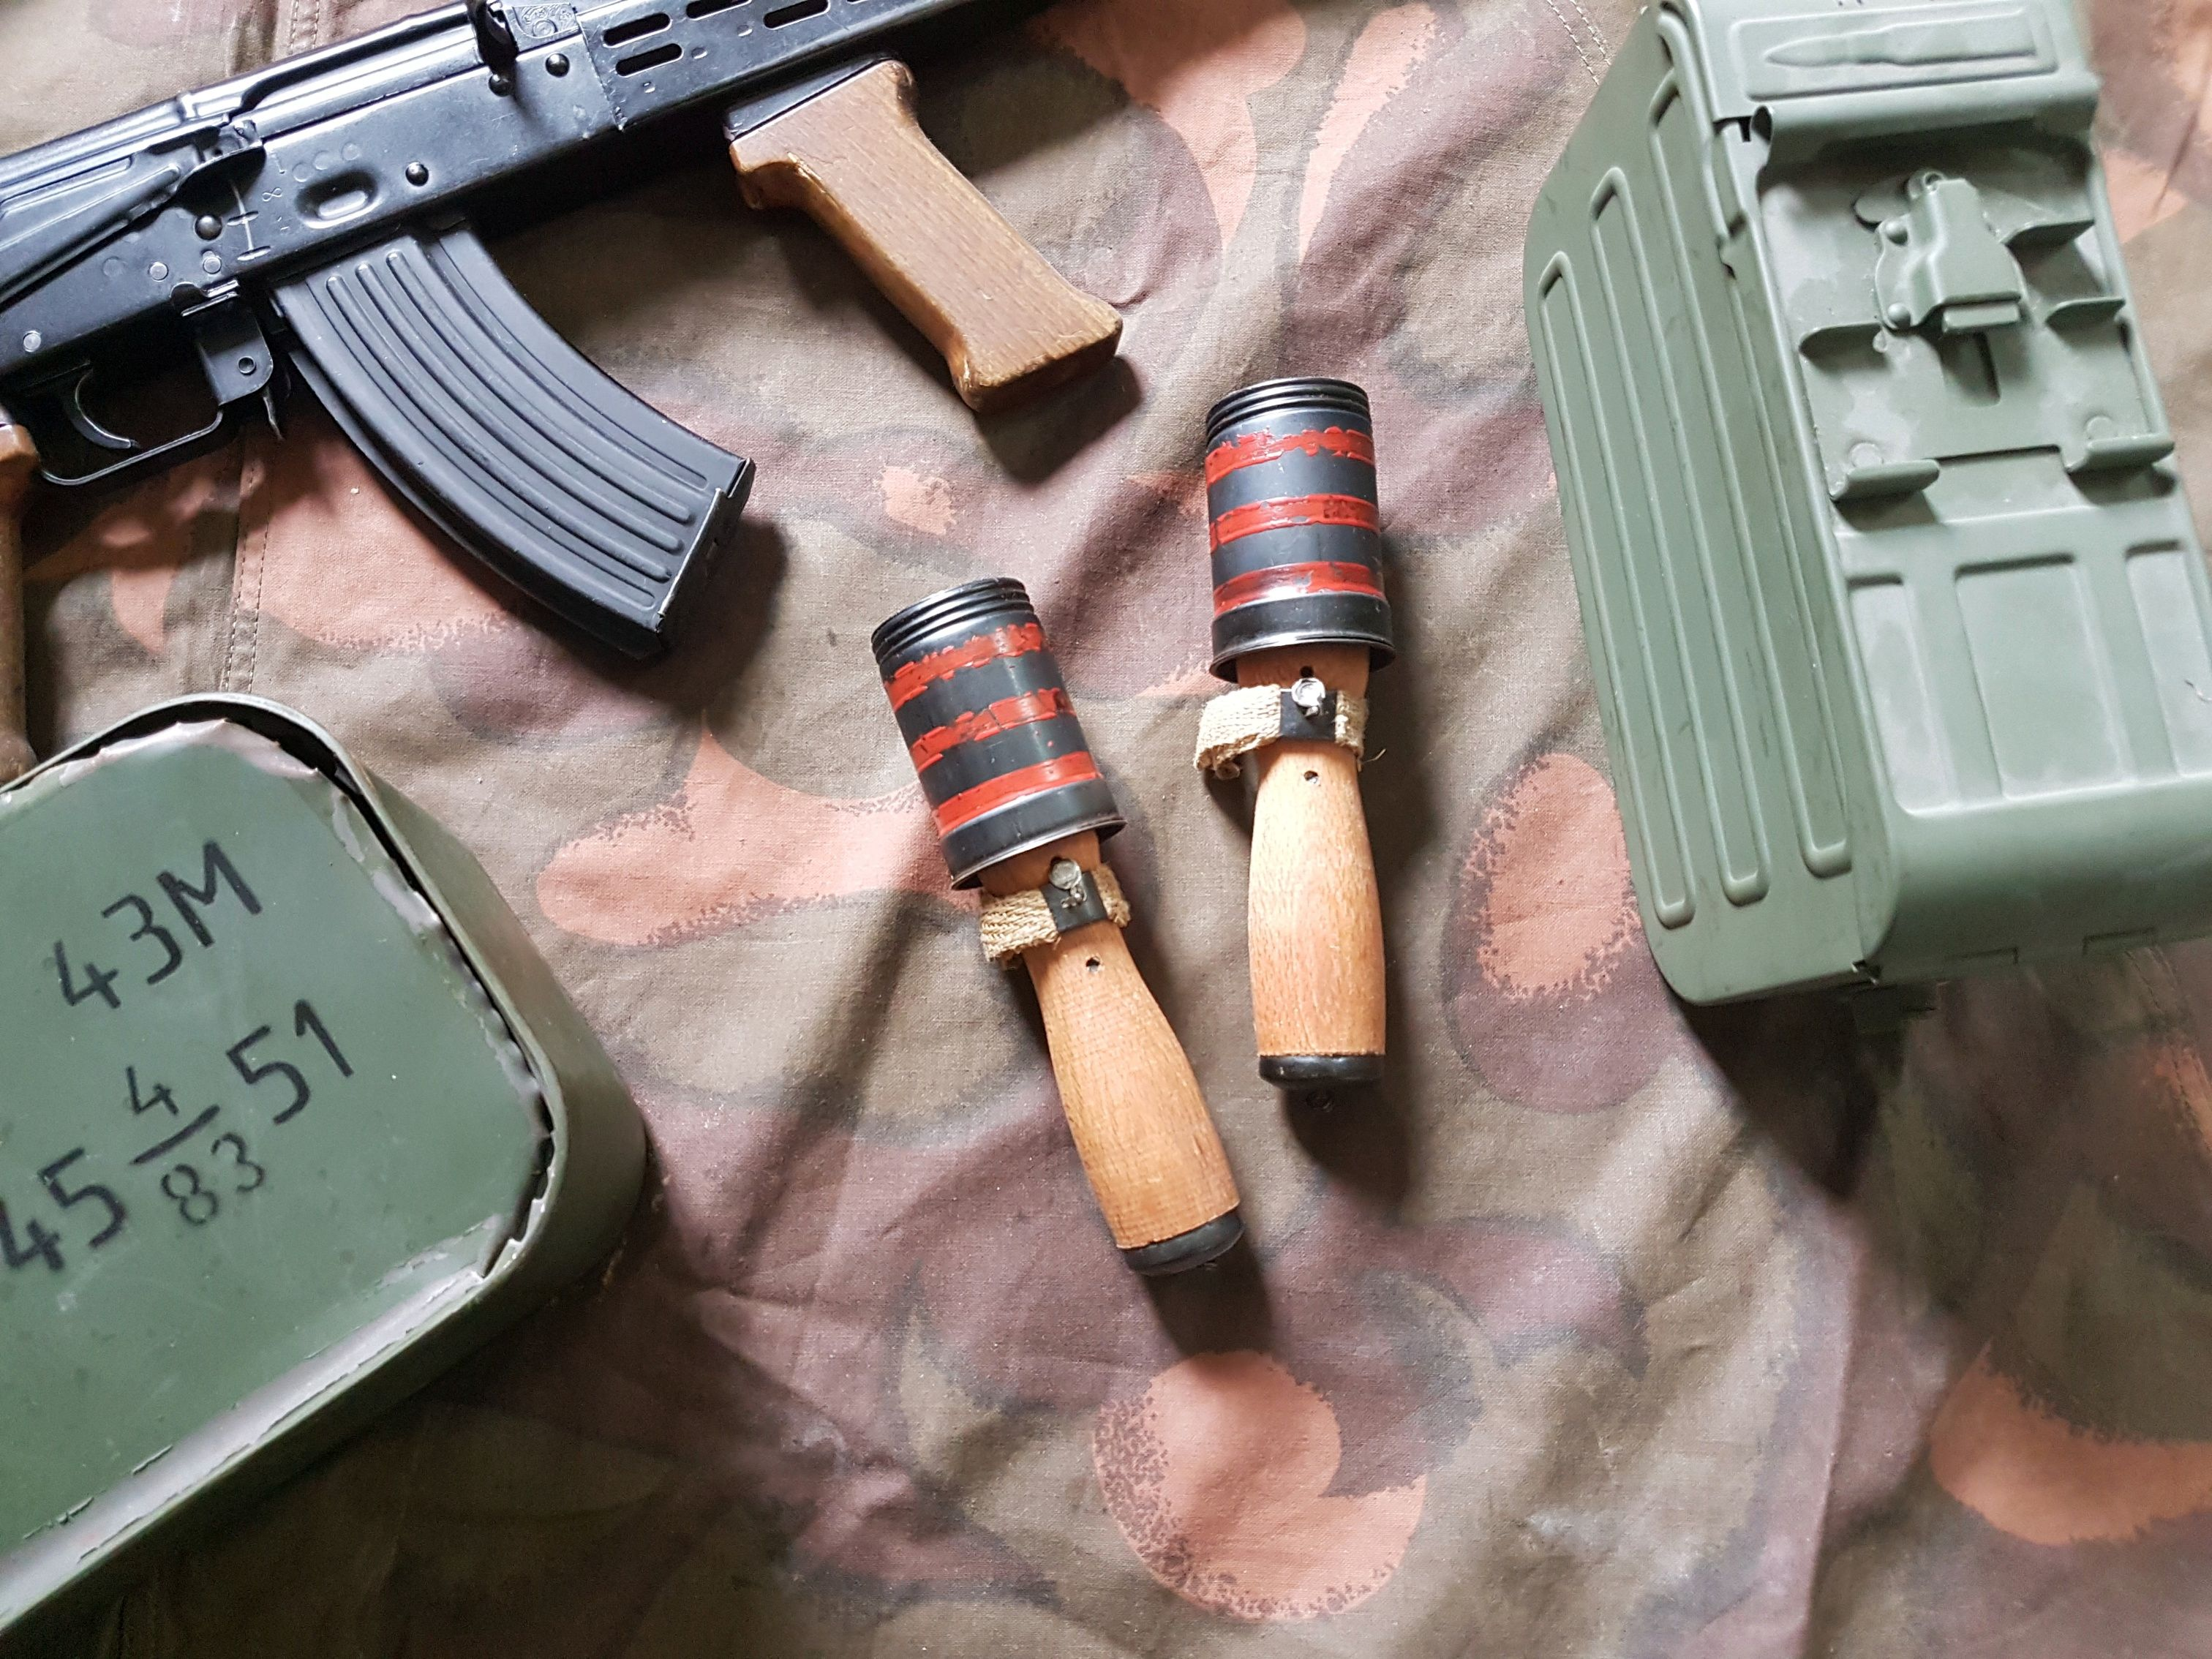 Hungarian 42/48 M  hand grenade – Armament Research Services